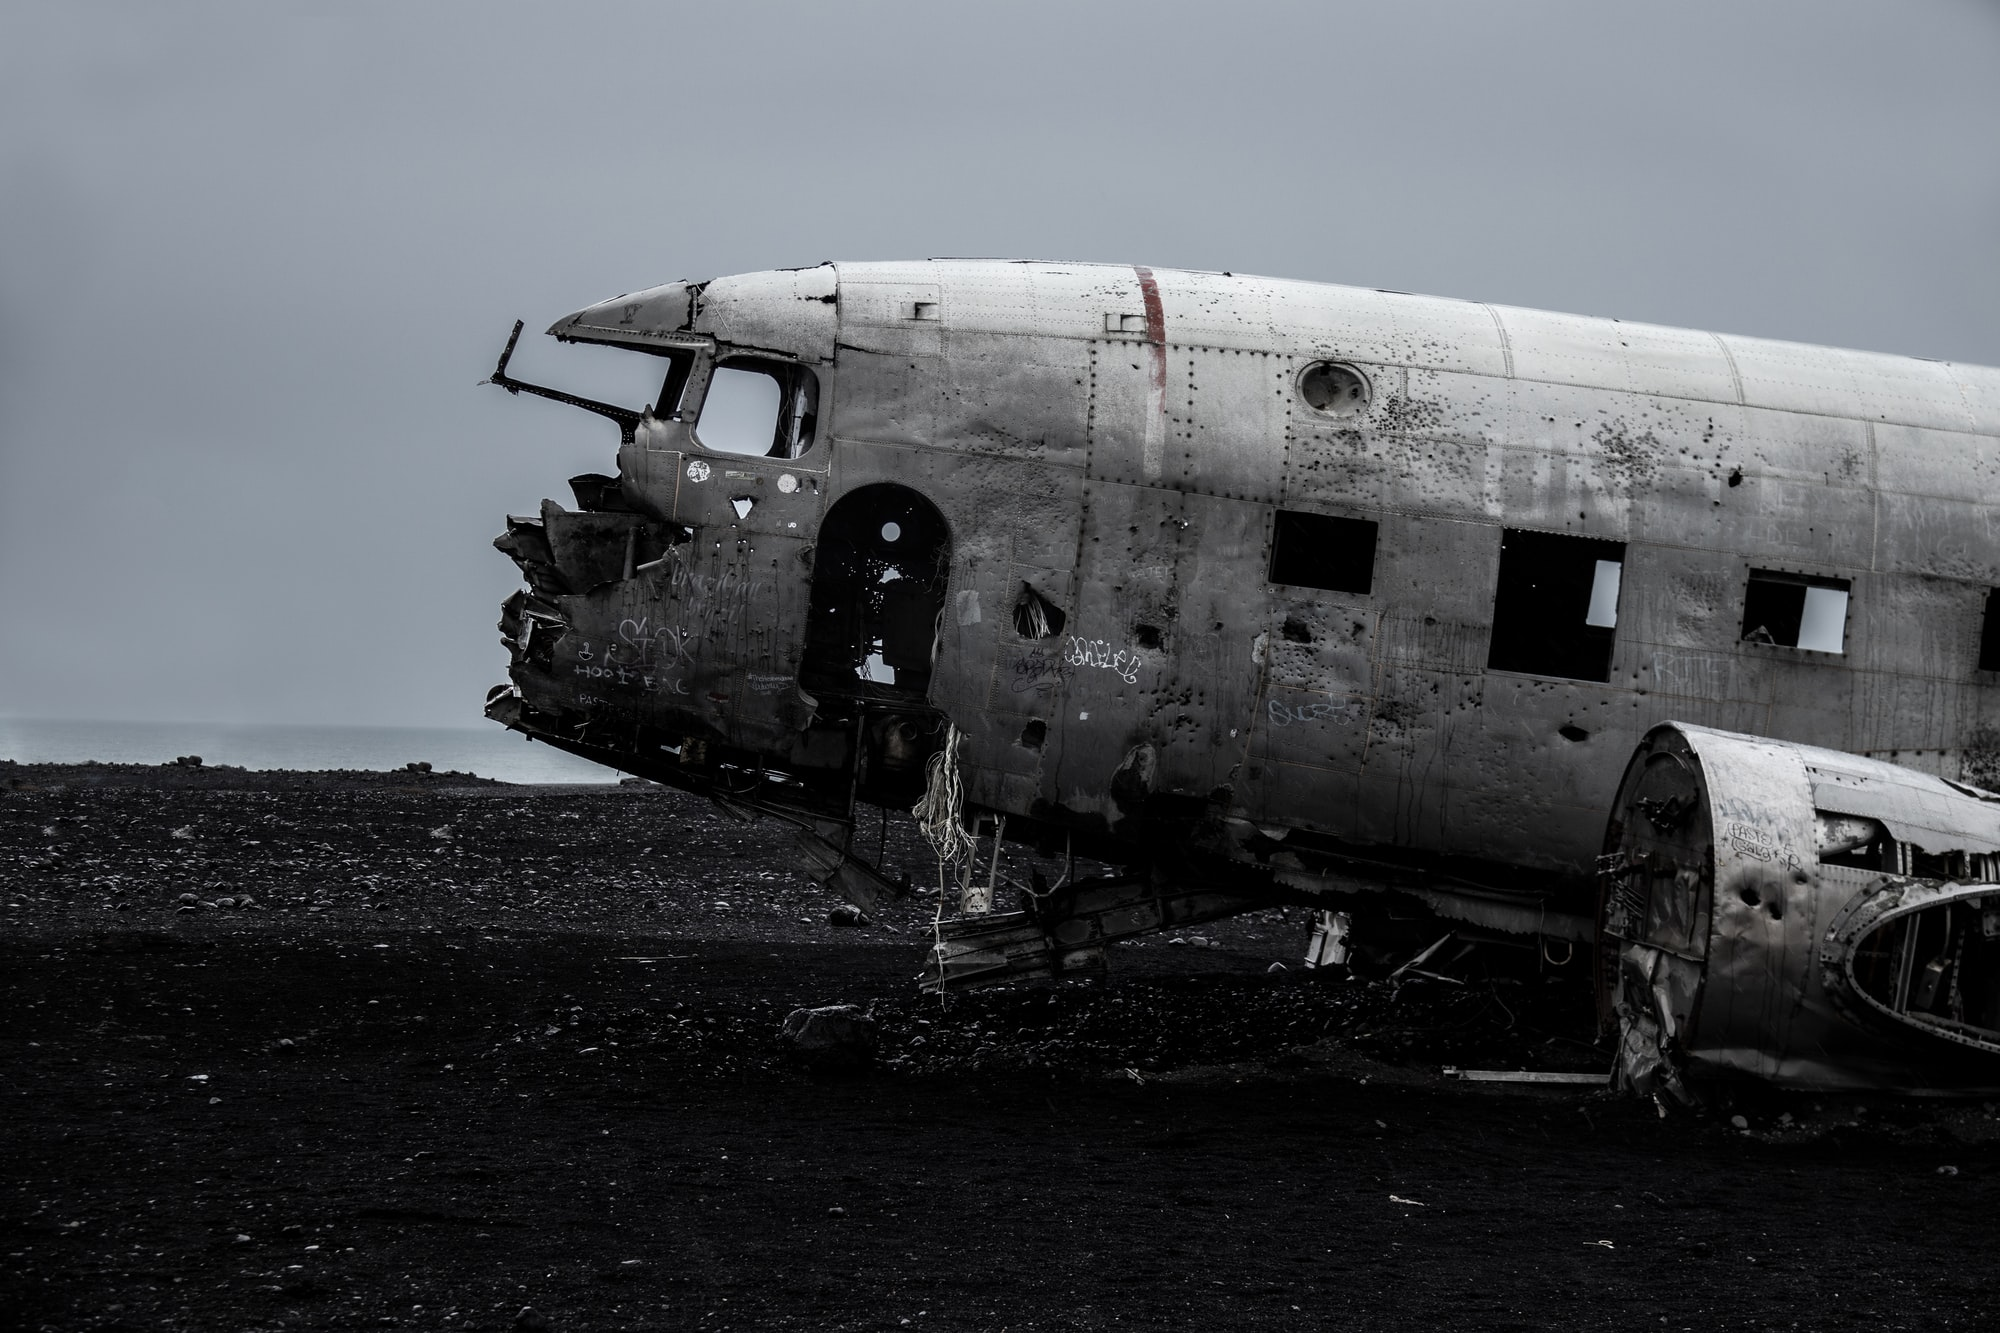 plane wrack island north destroyed iceland seebach crashed bad sad angry flying sand beach ocean